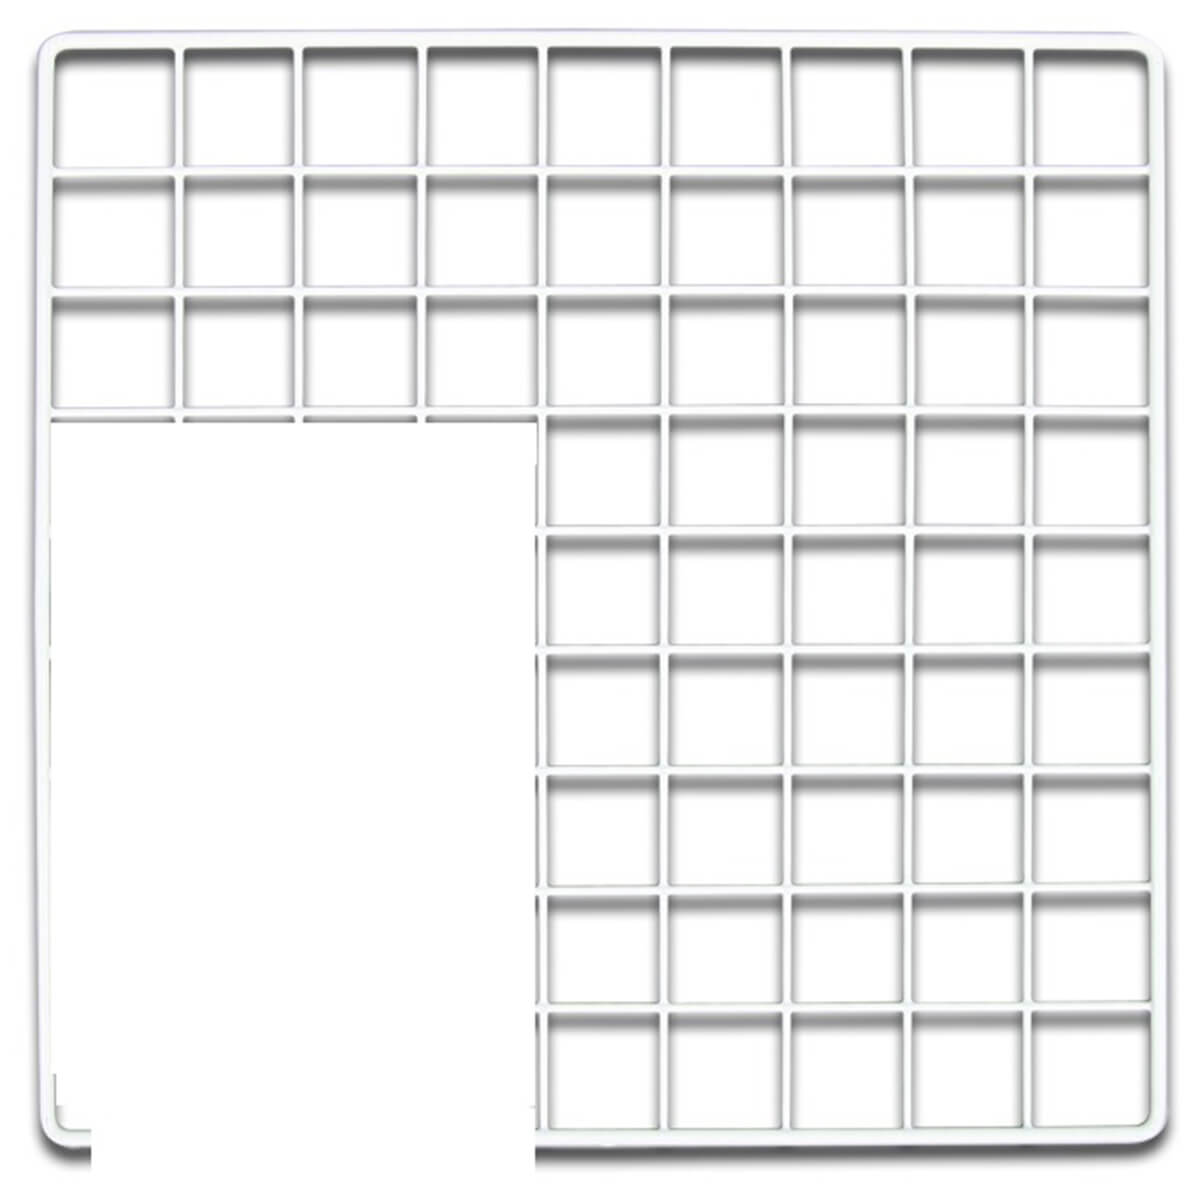 Special Cut Grid for Inset Ramp - 600302